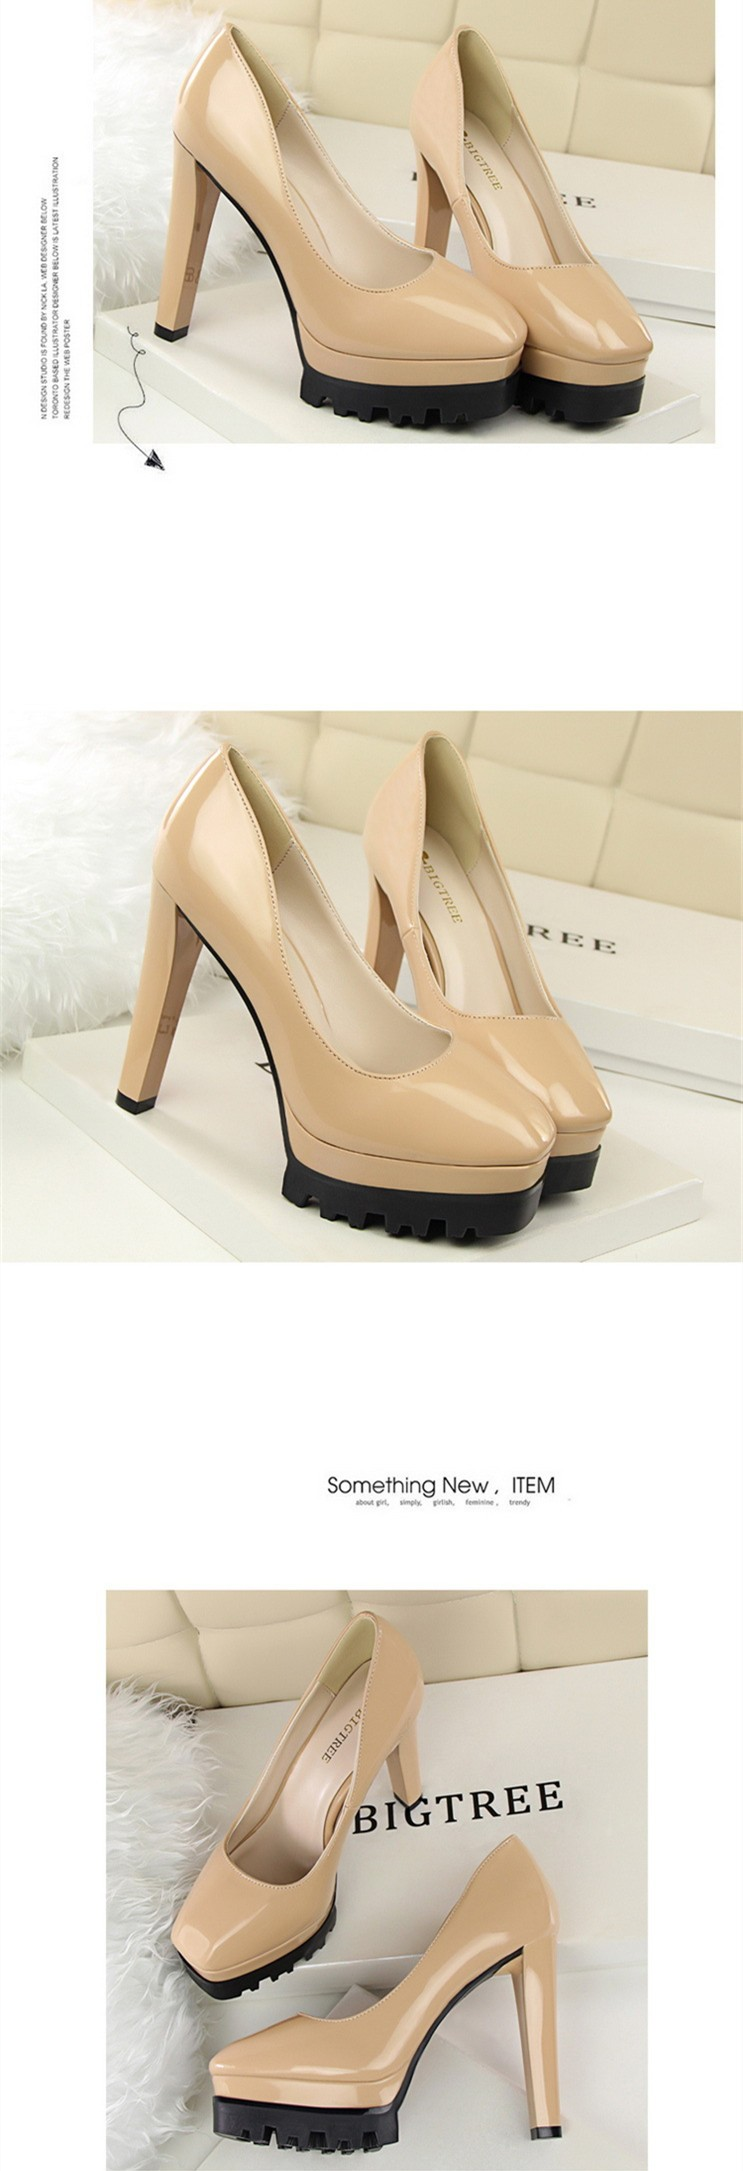 Size 4~8 New Arrival Autumn Women Shoes Round Toe Nude High Heels Shoes 2016 Women Pumps zapatos mujer (Check Foot Length)